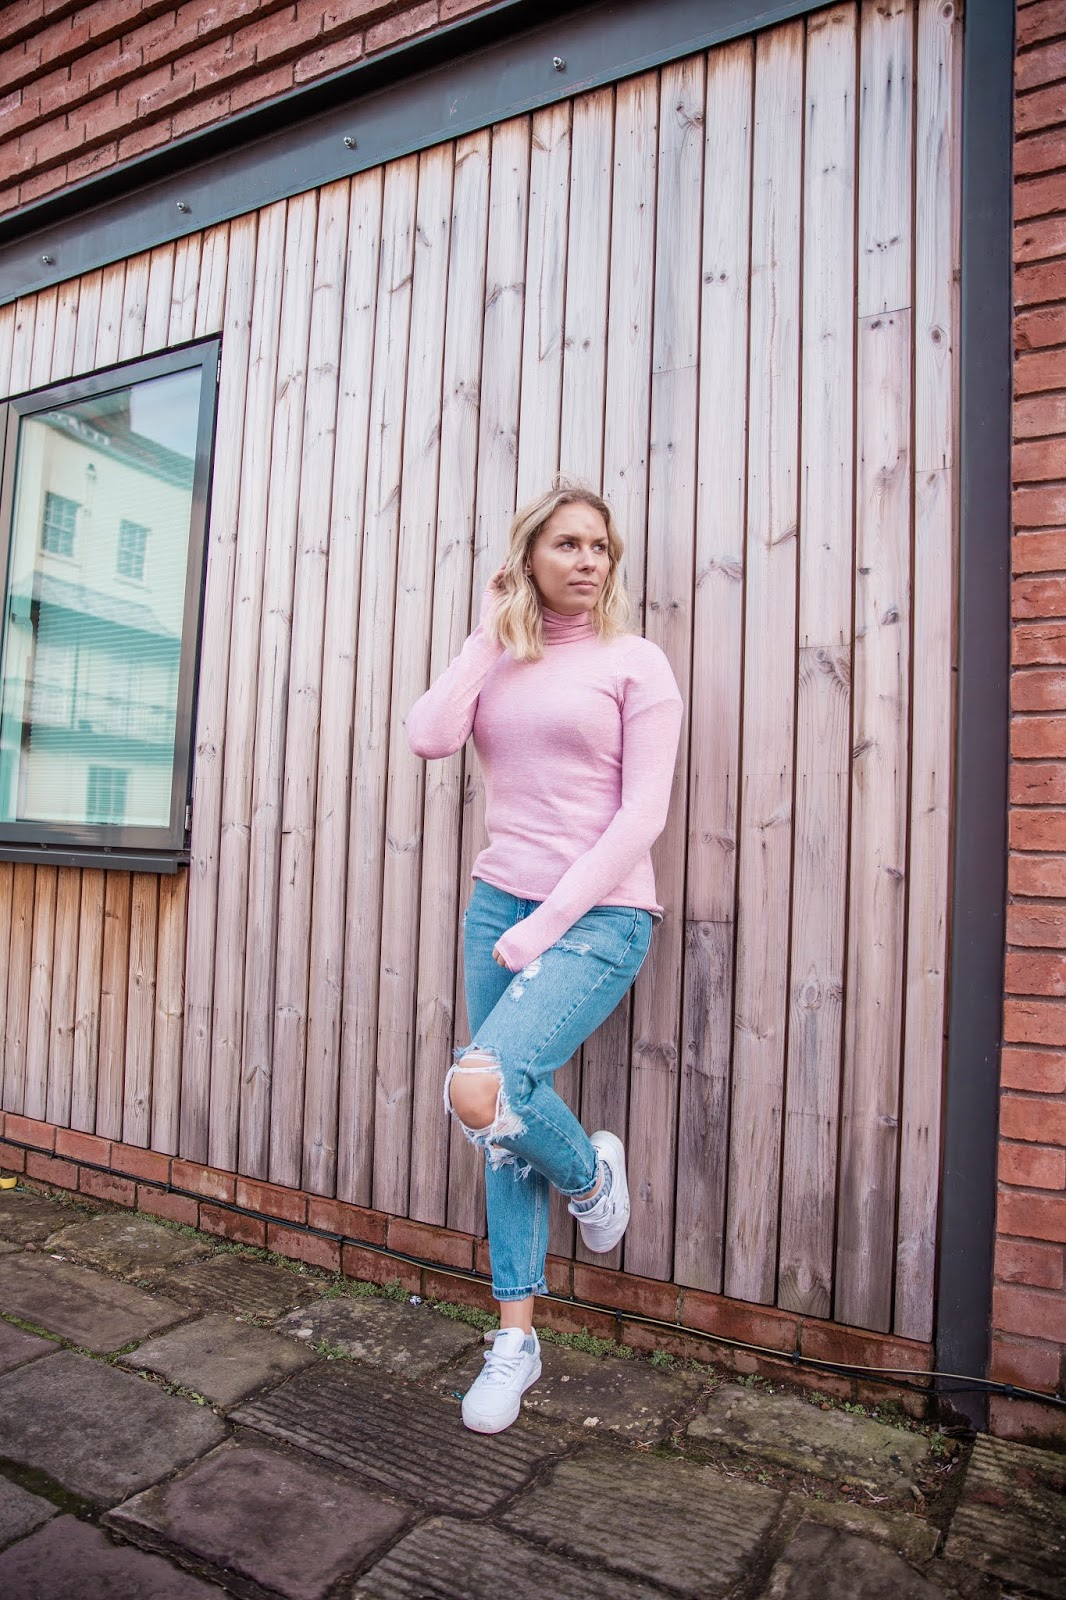 Rachel Emily standing in front of a wood clad wall in a pink top and blue jeans